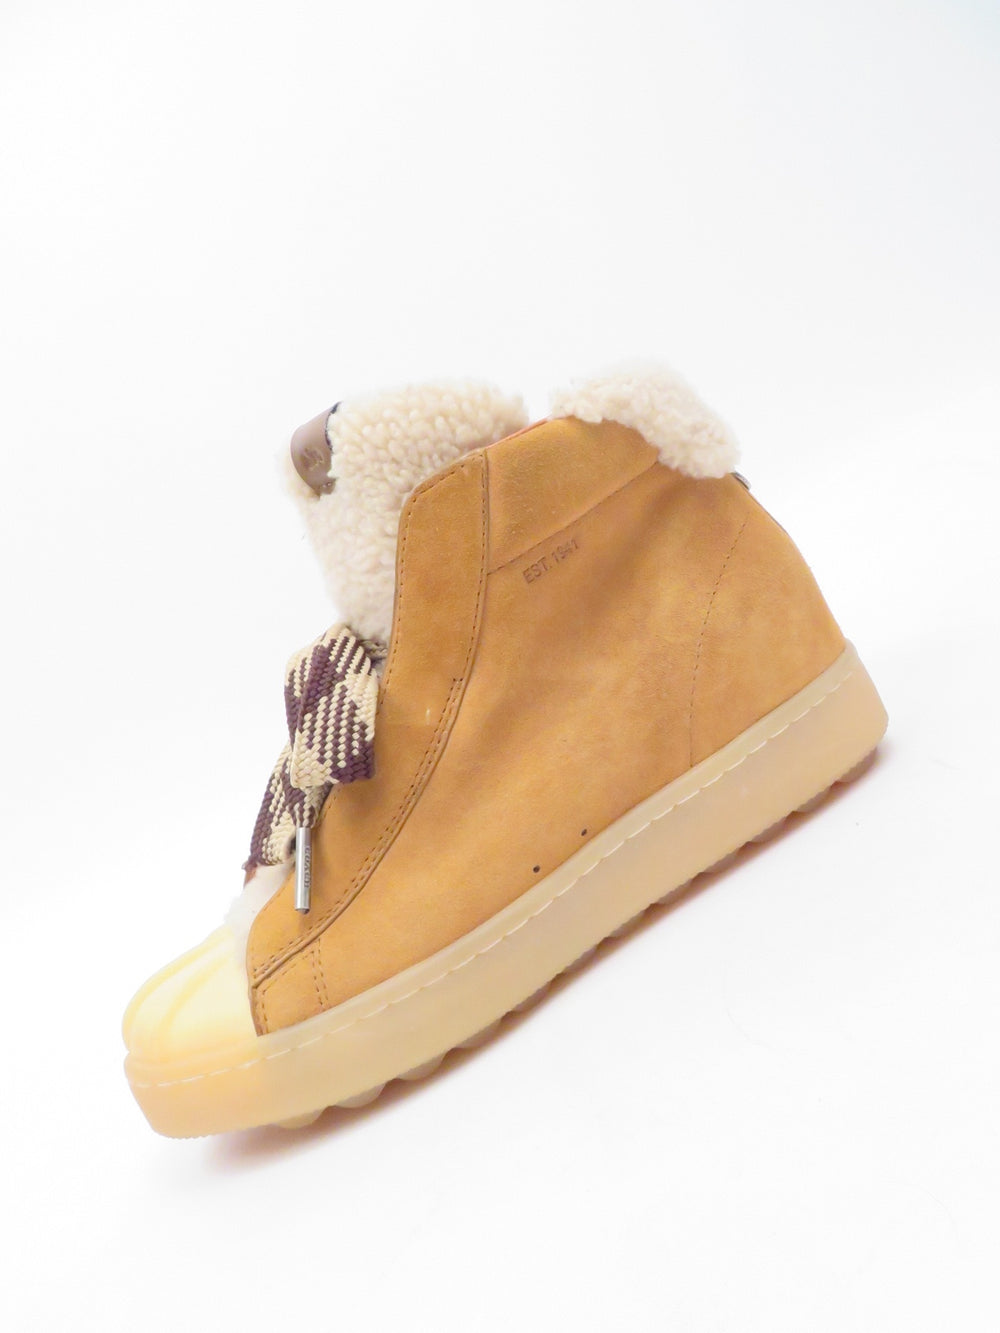 coach brown weather boots. features rubber type sole and toe with suede body and appears to be leather lining, sherpa type tongue and multicolor shoe lace tie.